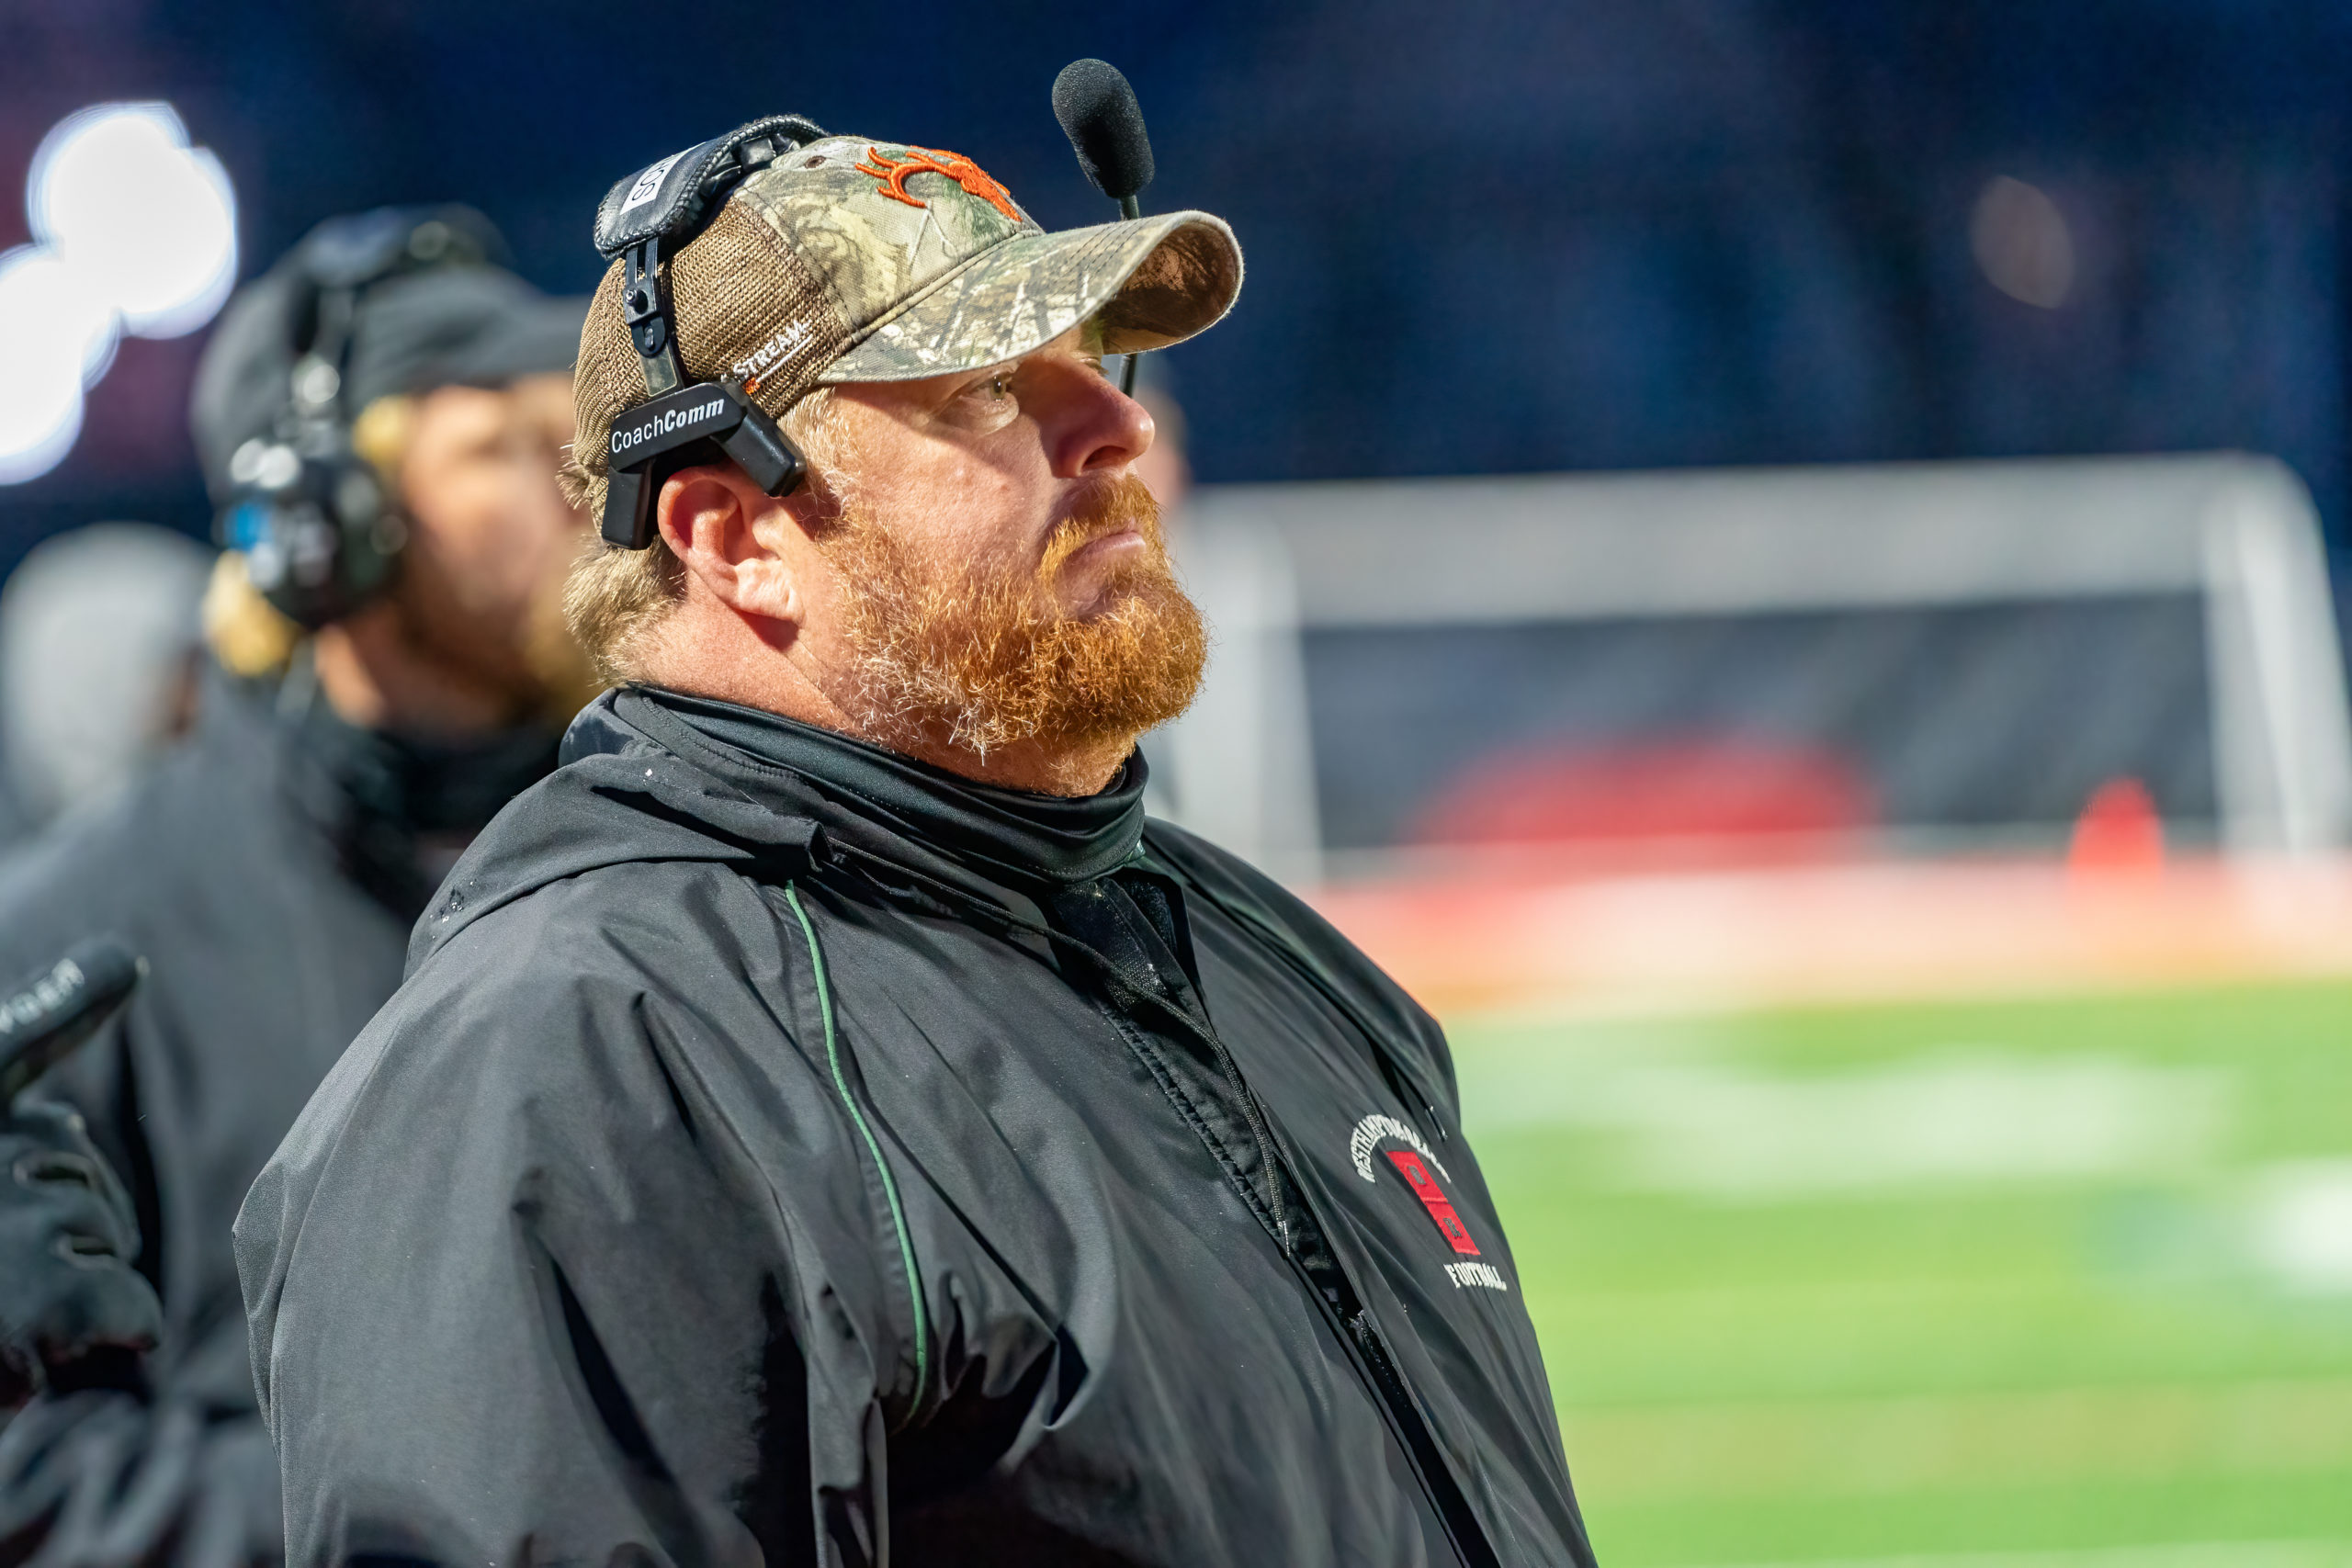 Westhampton Beach head coach Bryan Shaumloffel watches his team. His Hurricanes played from behind for most of the game but came back to win, 27-21.